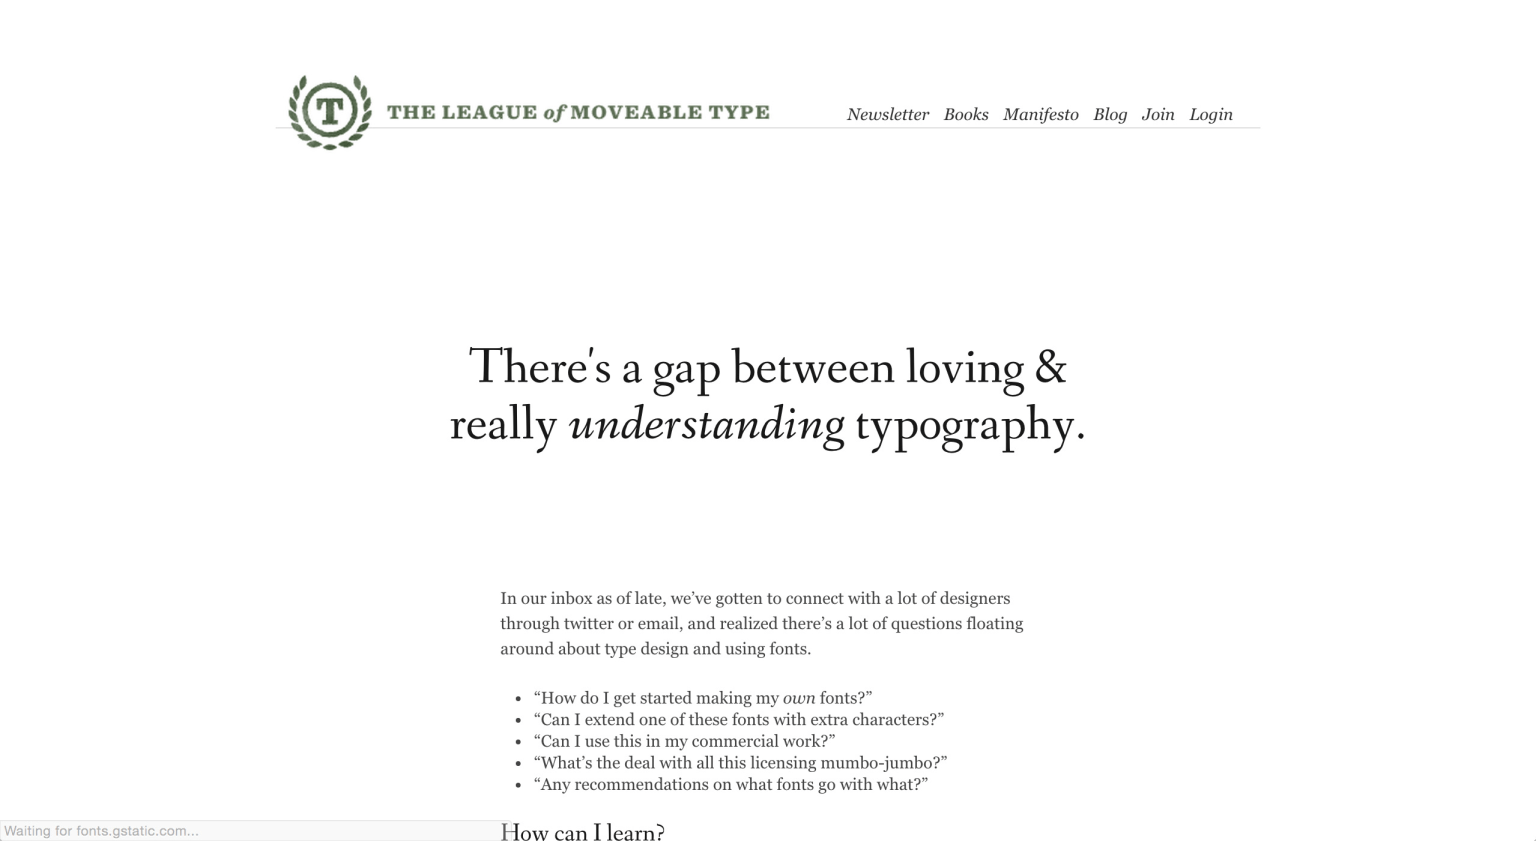 The League of Moveable Type